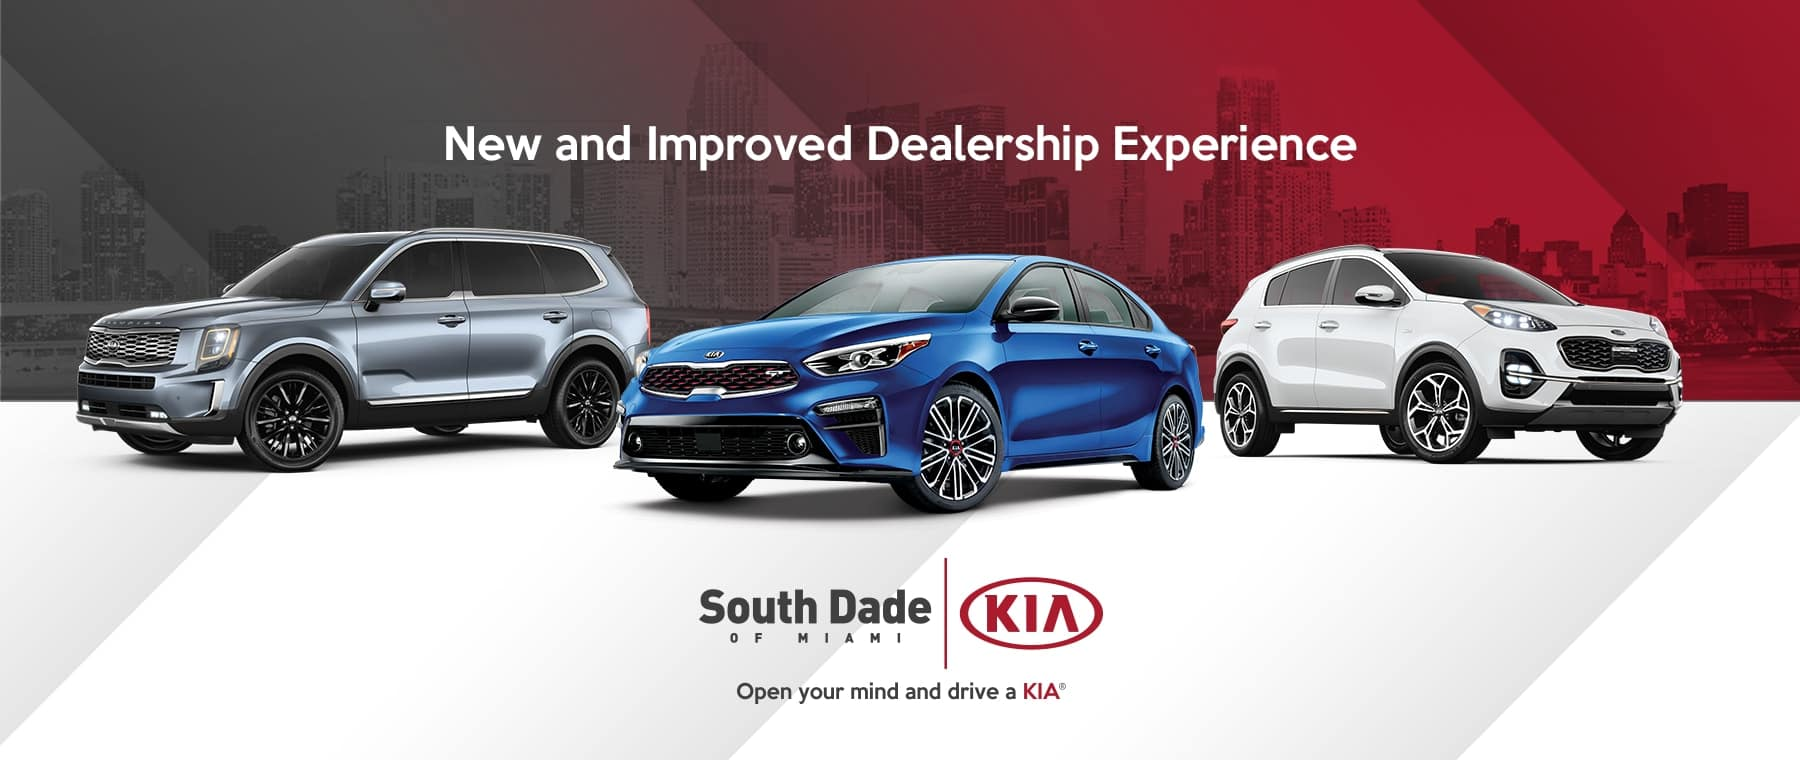 Kia Used Cars >> South Dade Kia Dealer Serving Miami Formerly Sunshine Kia